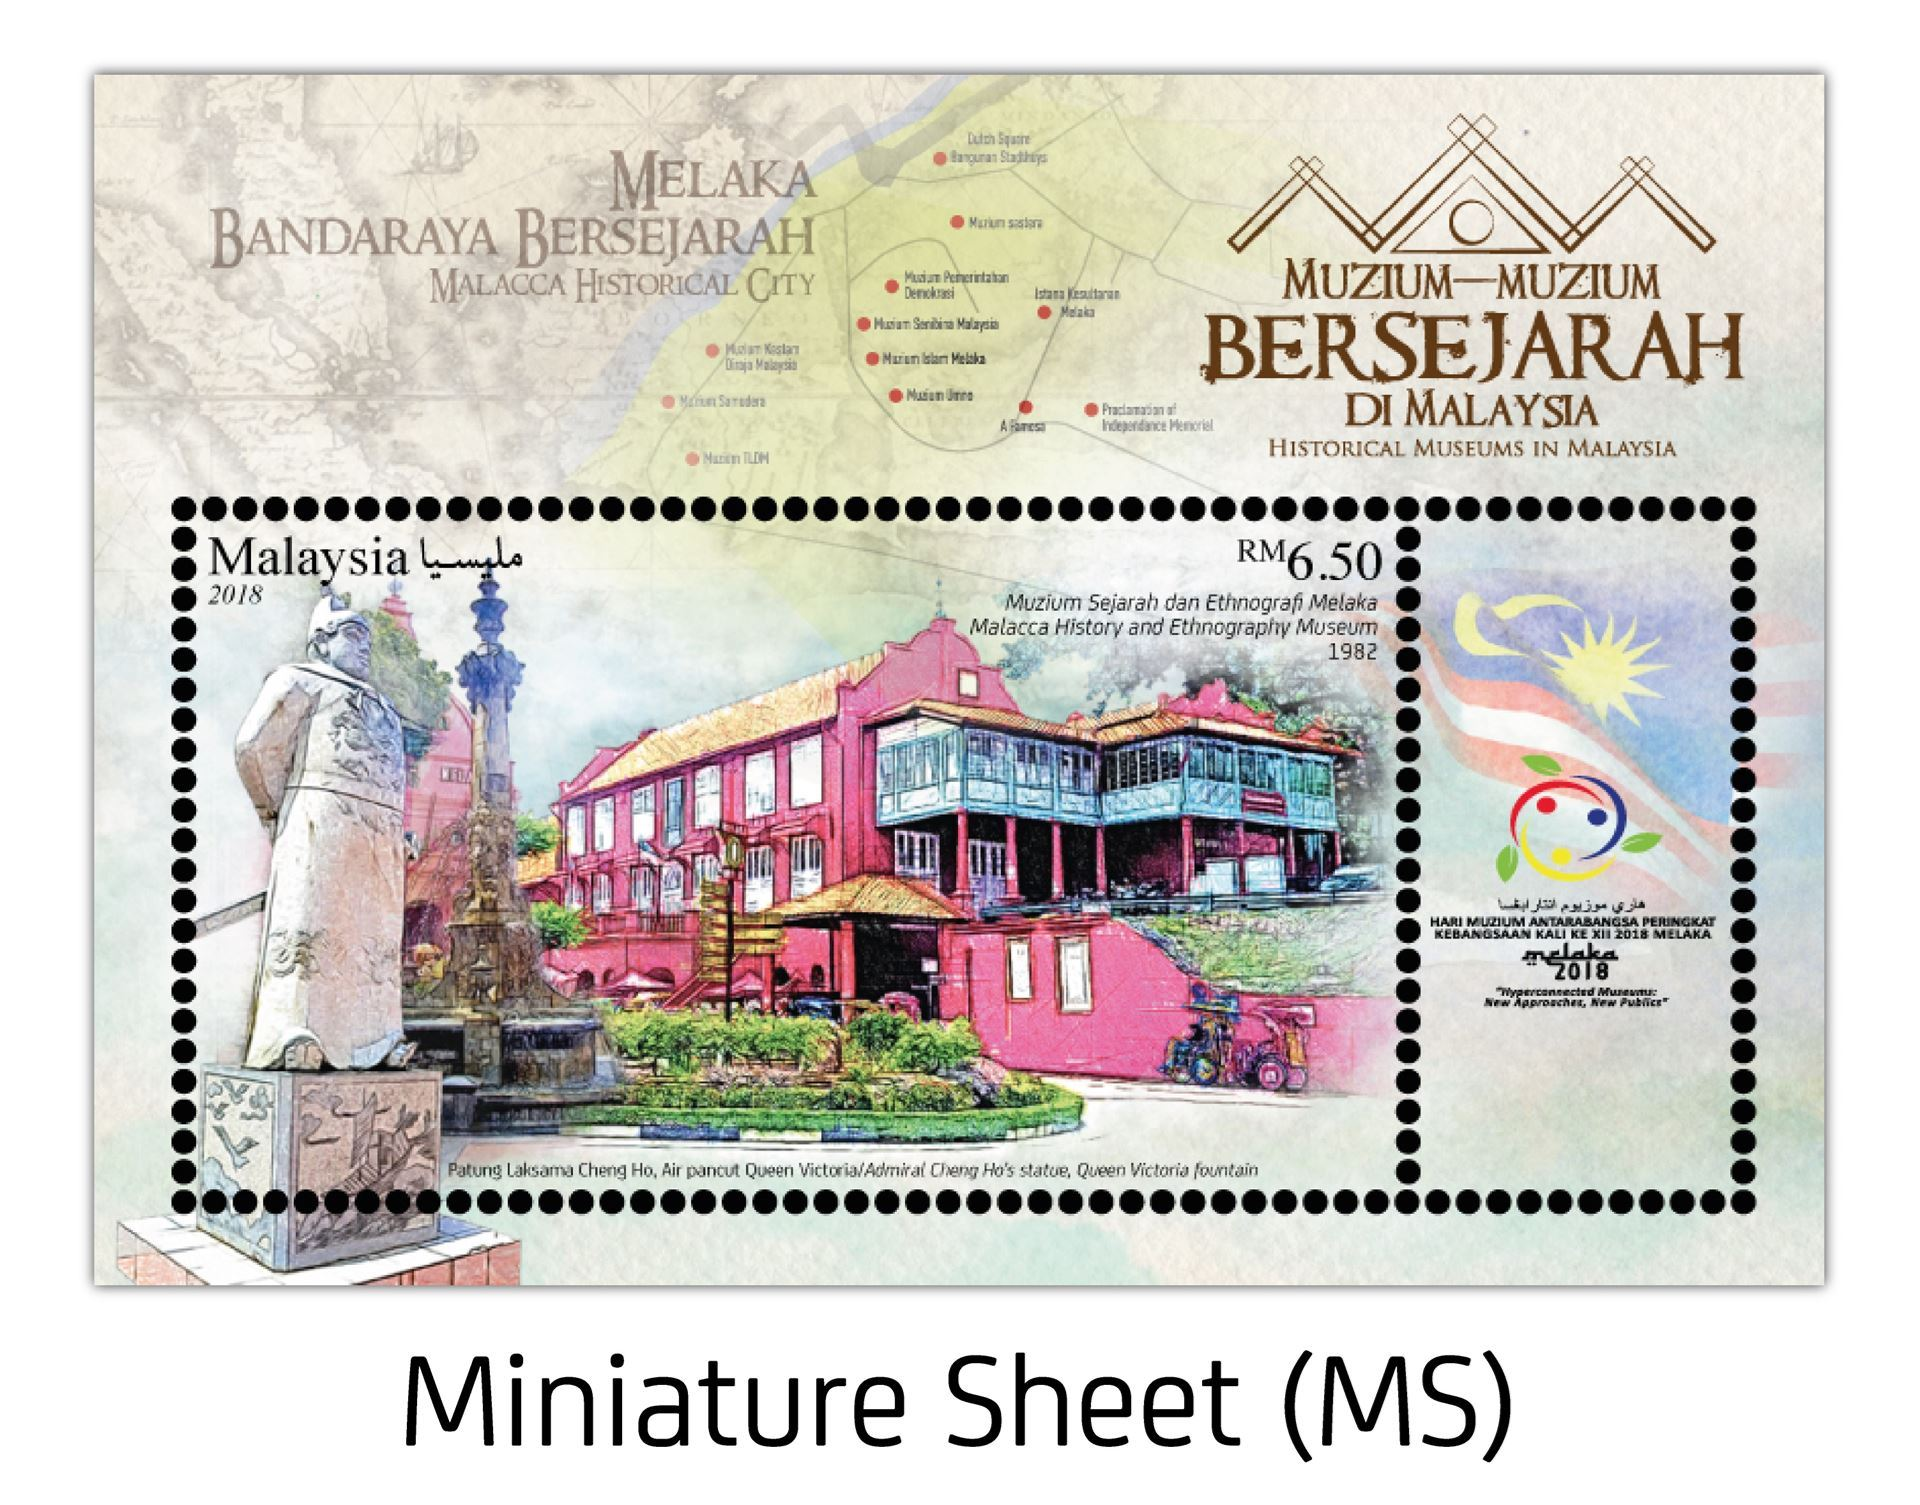 0002428_ms-historical-museums-in-malaysia.jpeg